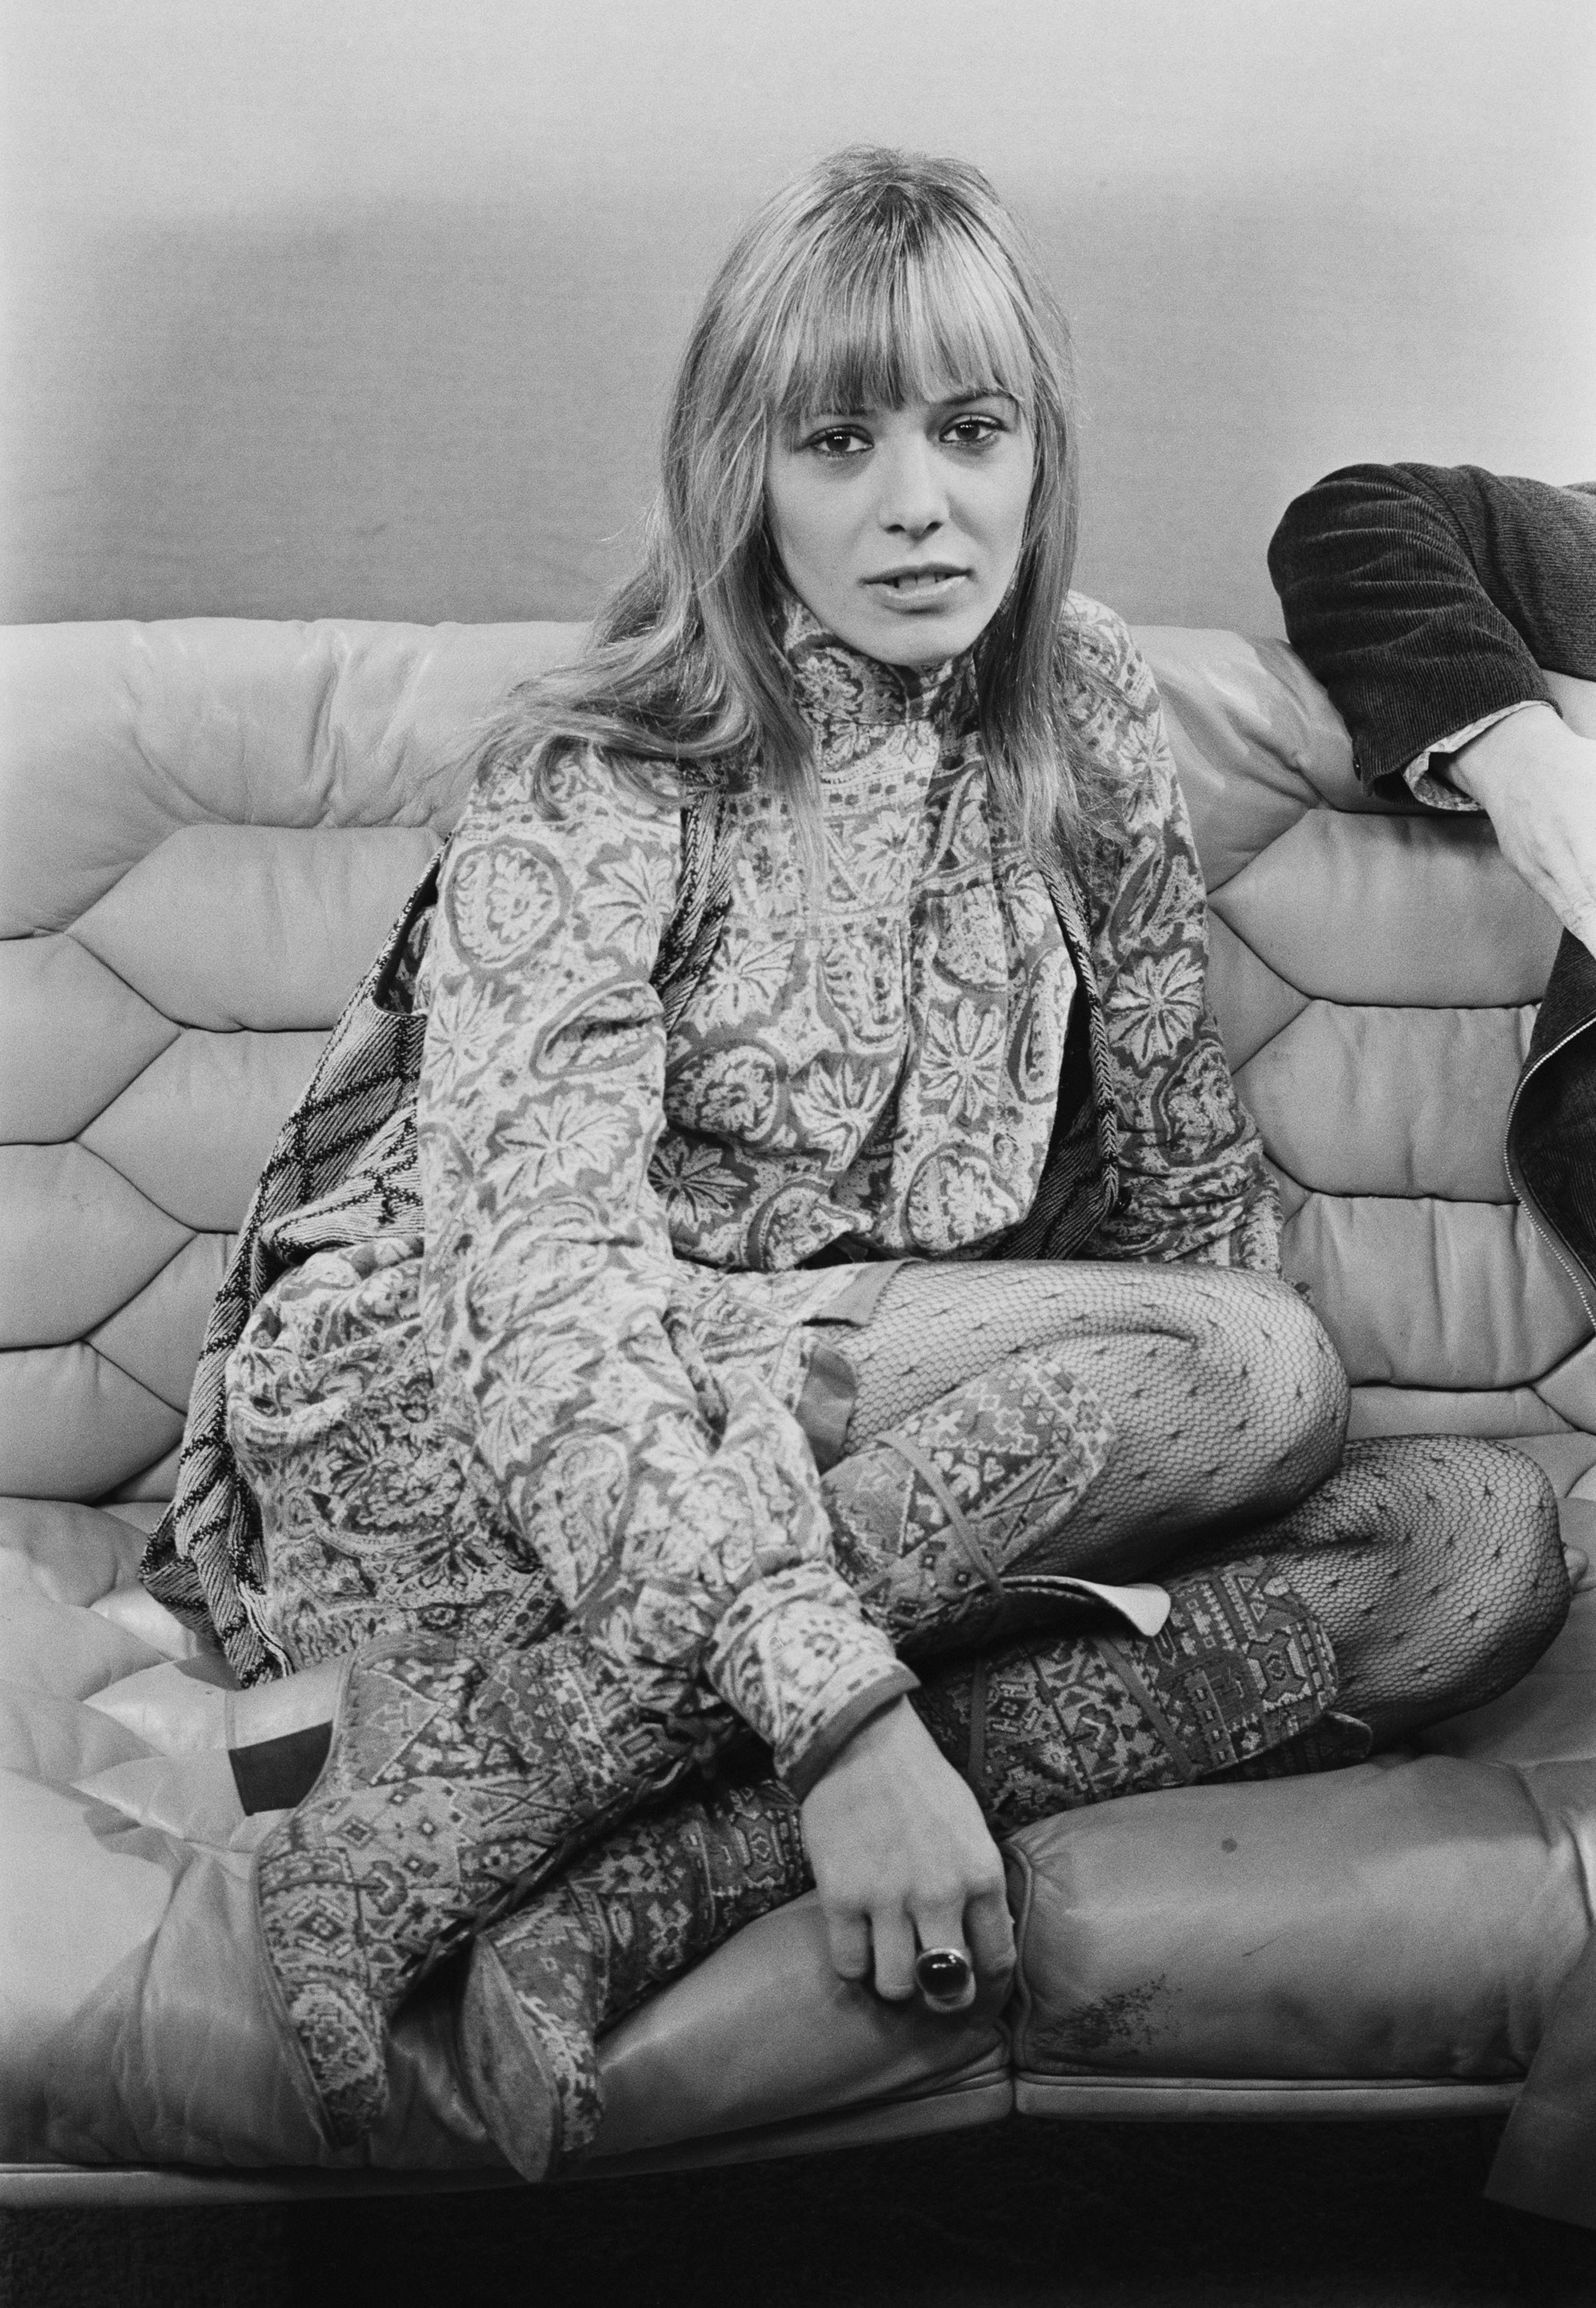 Homenaje a Anita Pallenberg, la eterna reina del rock and roll